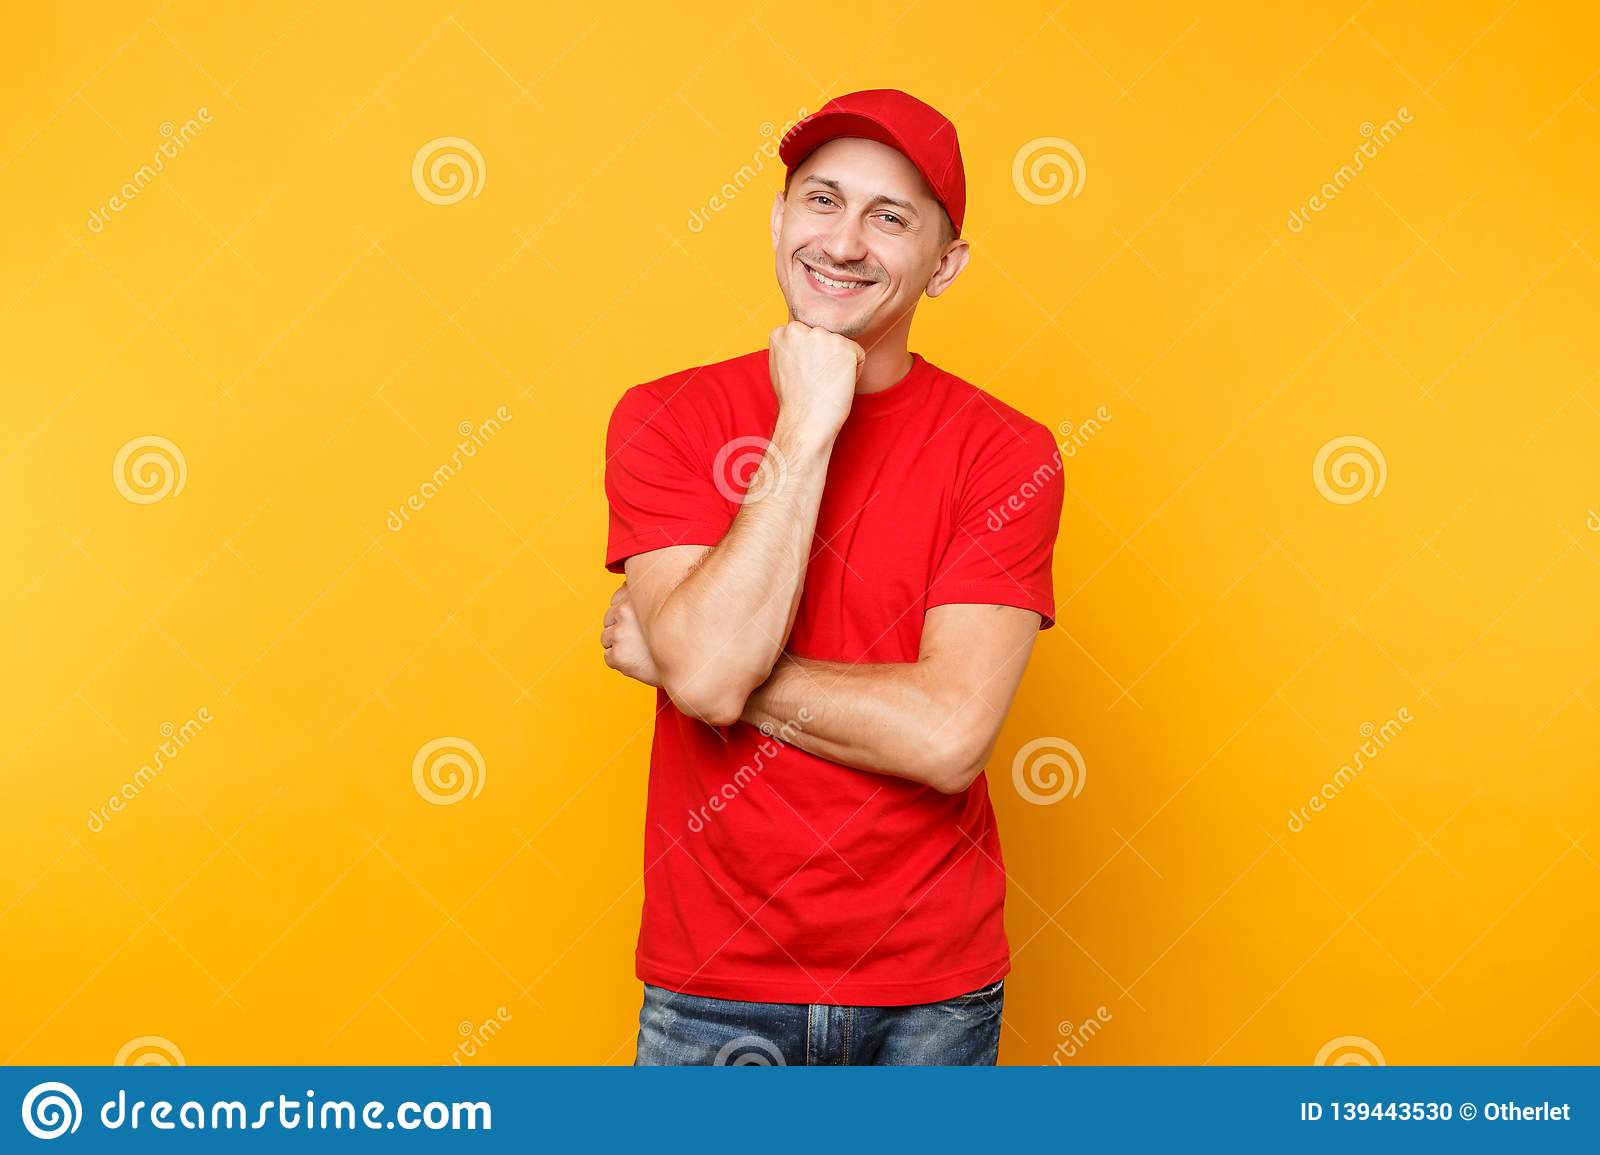 Delivery man in red uniform isolated on yellow orange background. Professional smiling male employee in cap, t-shirt